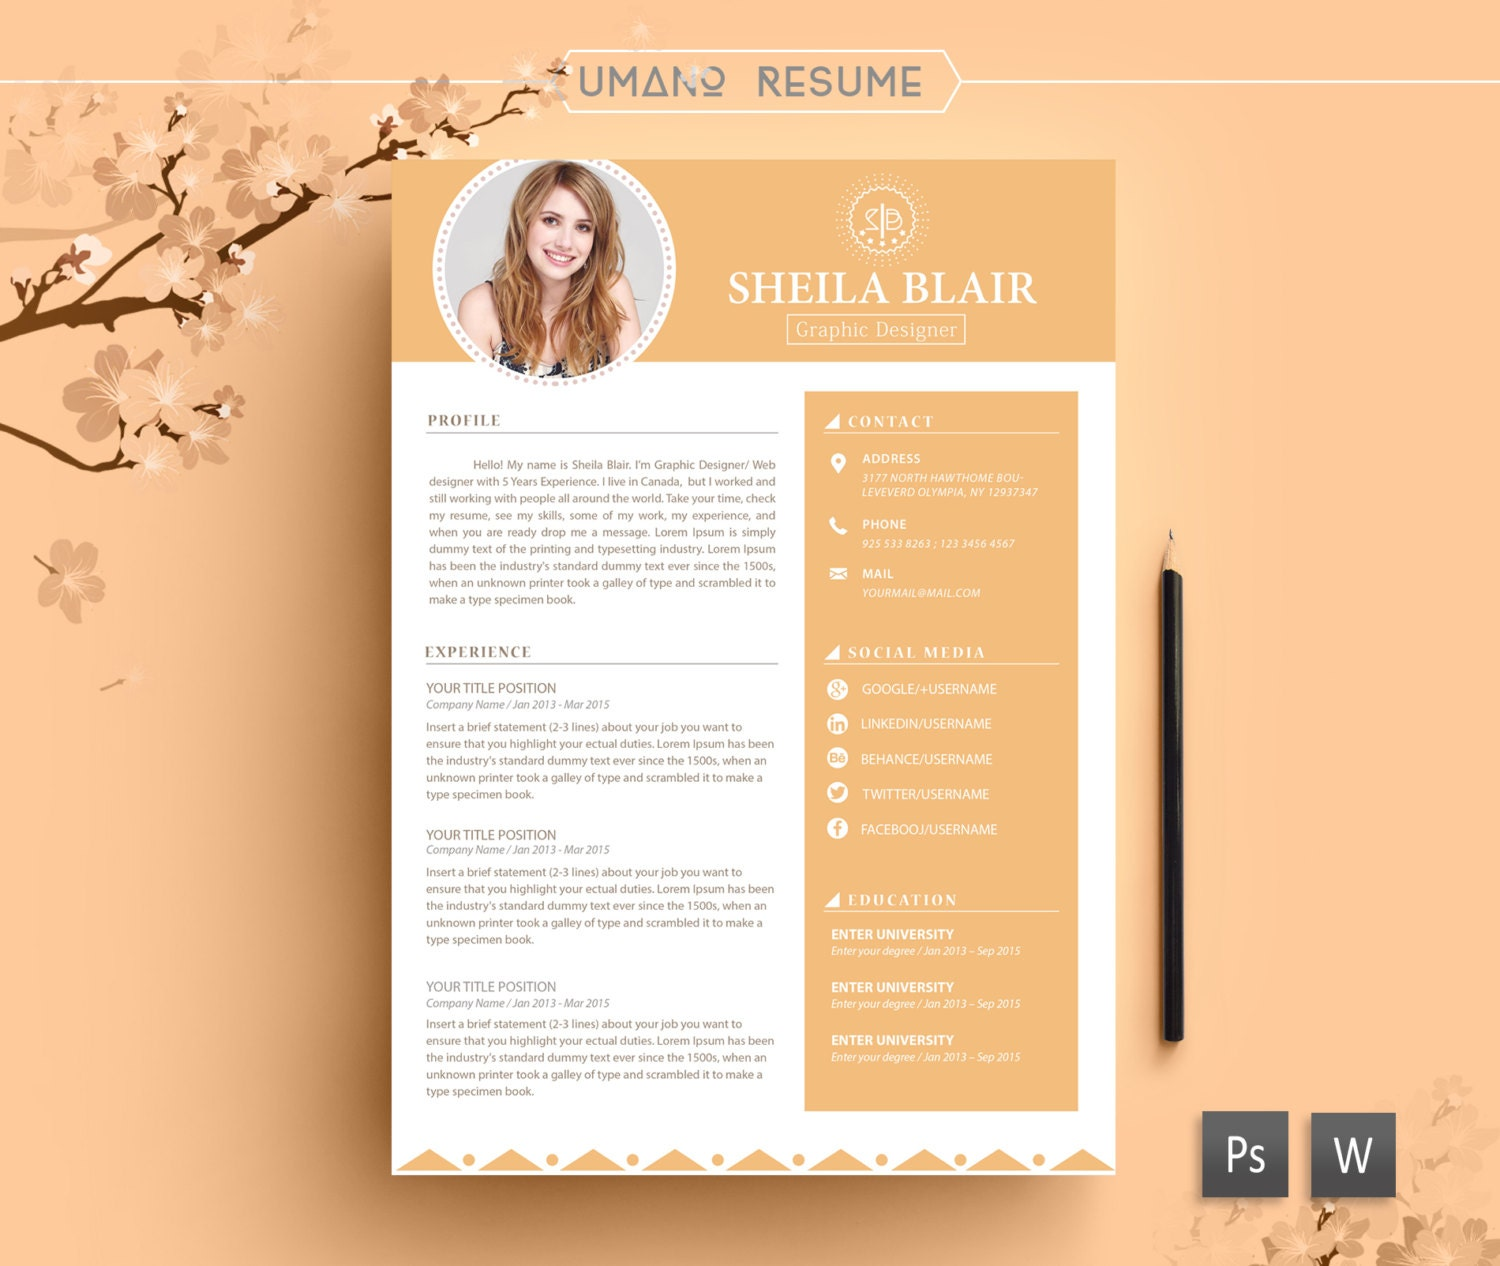 computer engineer resume cover letter design resume template cover letter template the amy smith resume design - Free Resume And Cover Letter Templates